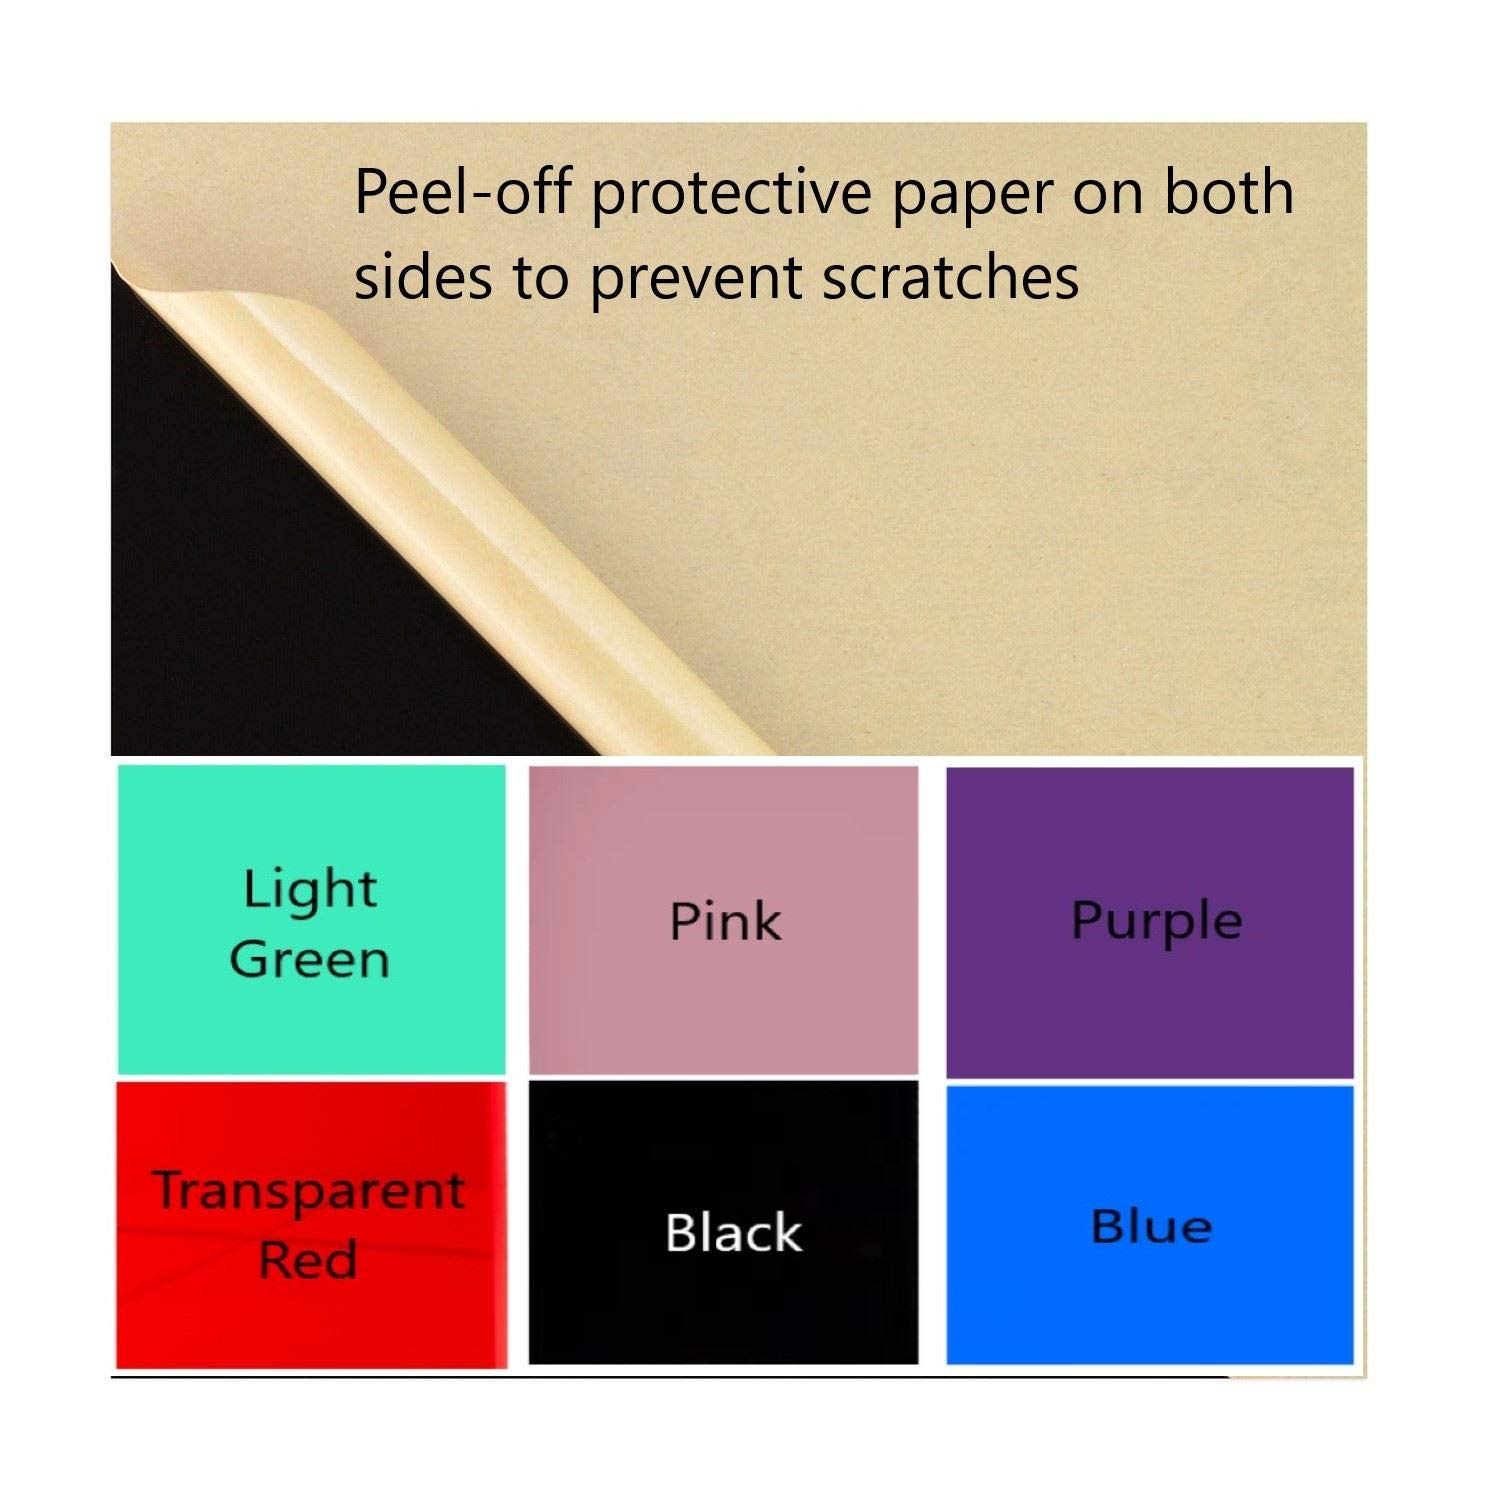 Easy to Cut Plastic Plexi Glass with Protective Paper for Signs Shelves Blue, 16 x 16 Crafts 3 Pack Color Cast Acrylic Plexiglass Sheets 1//8 Thick 3mm DIY Display Projects